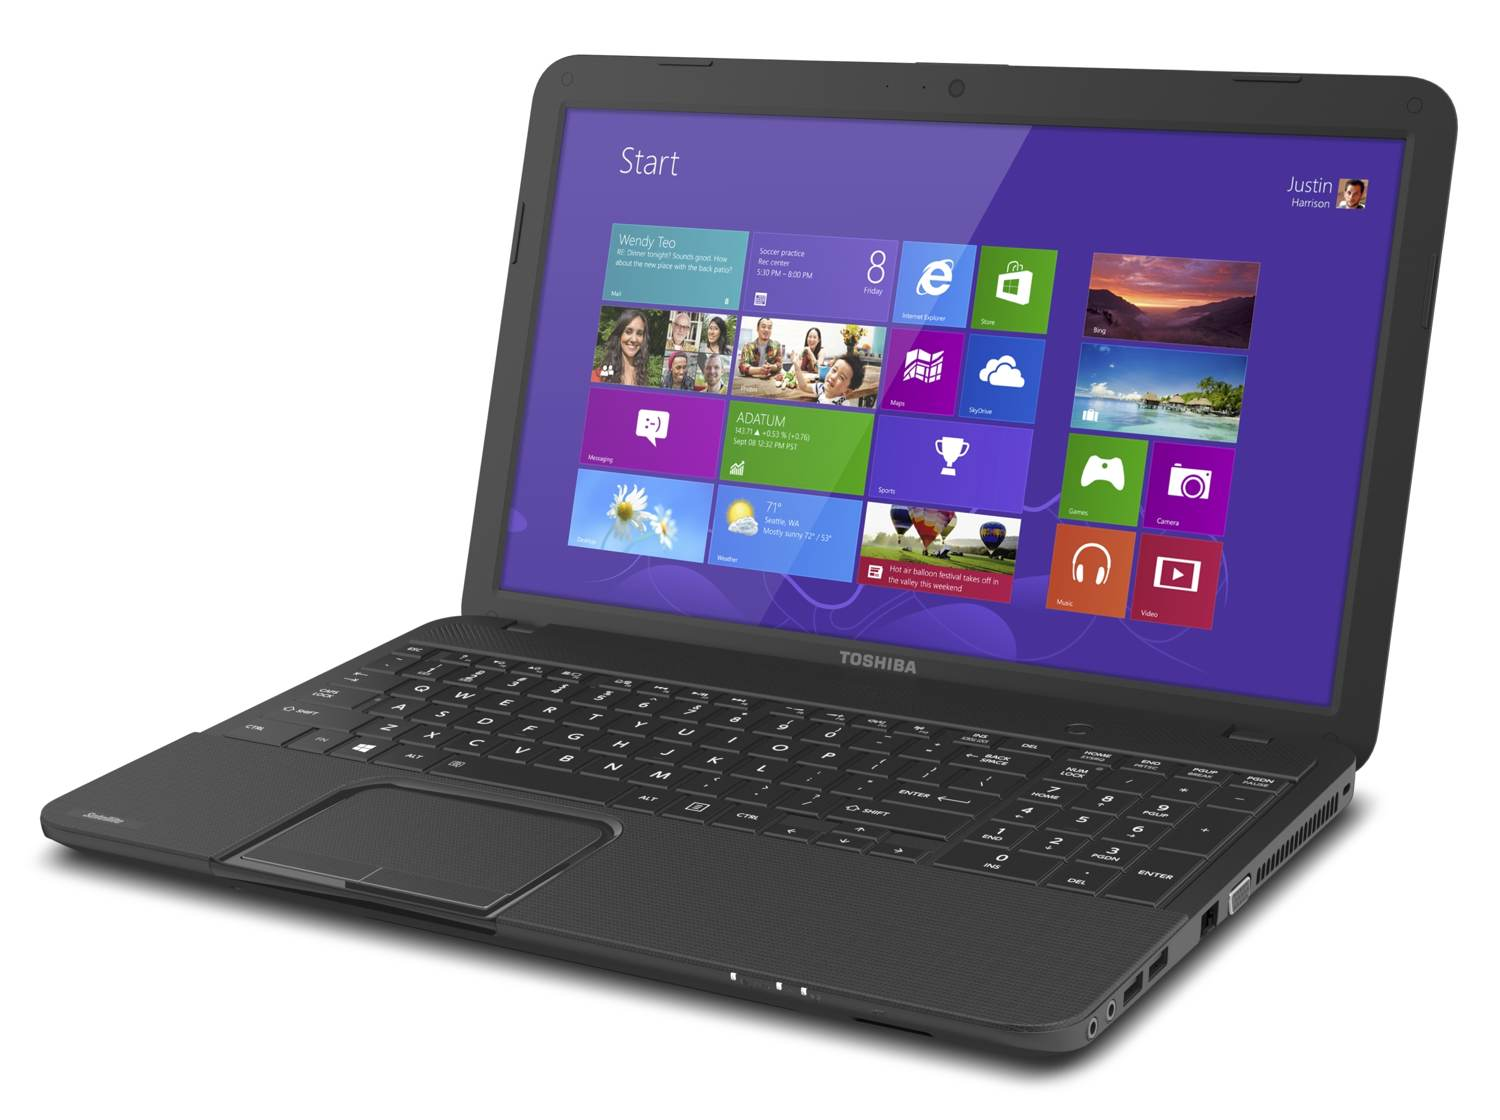 The Toshiba Satellite C855, powered by Windows 8 ( view larger ).